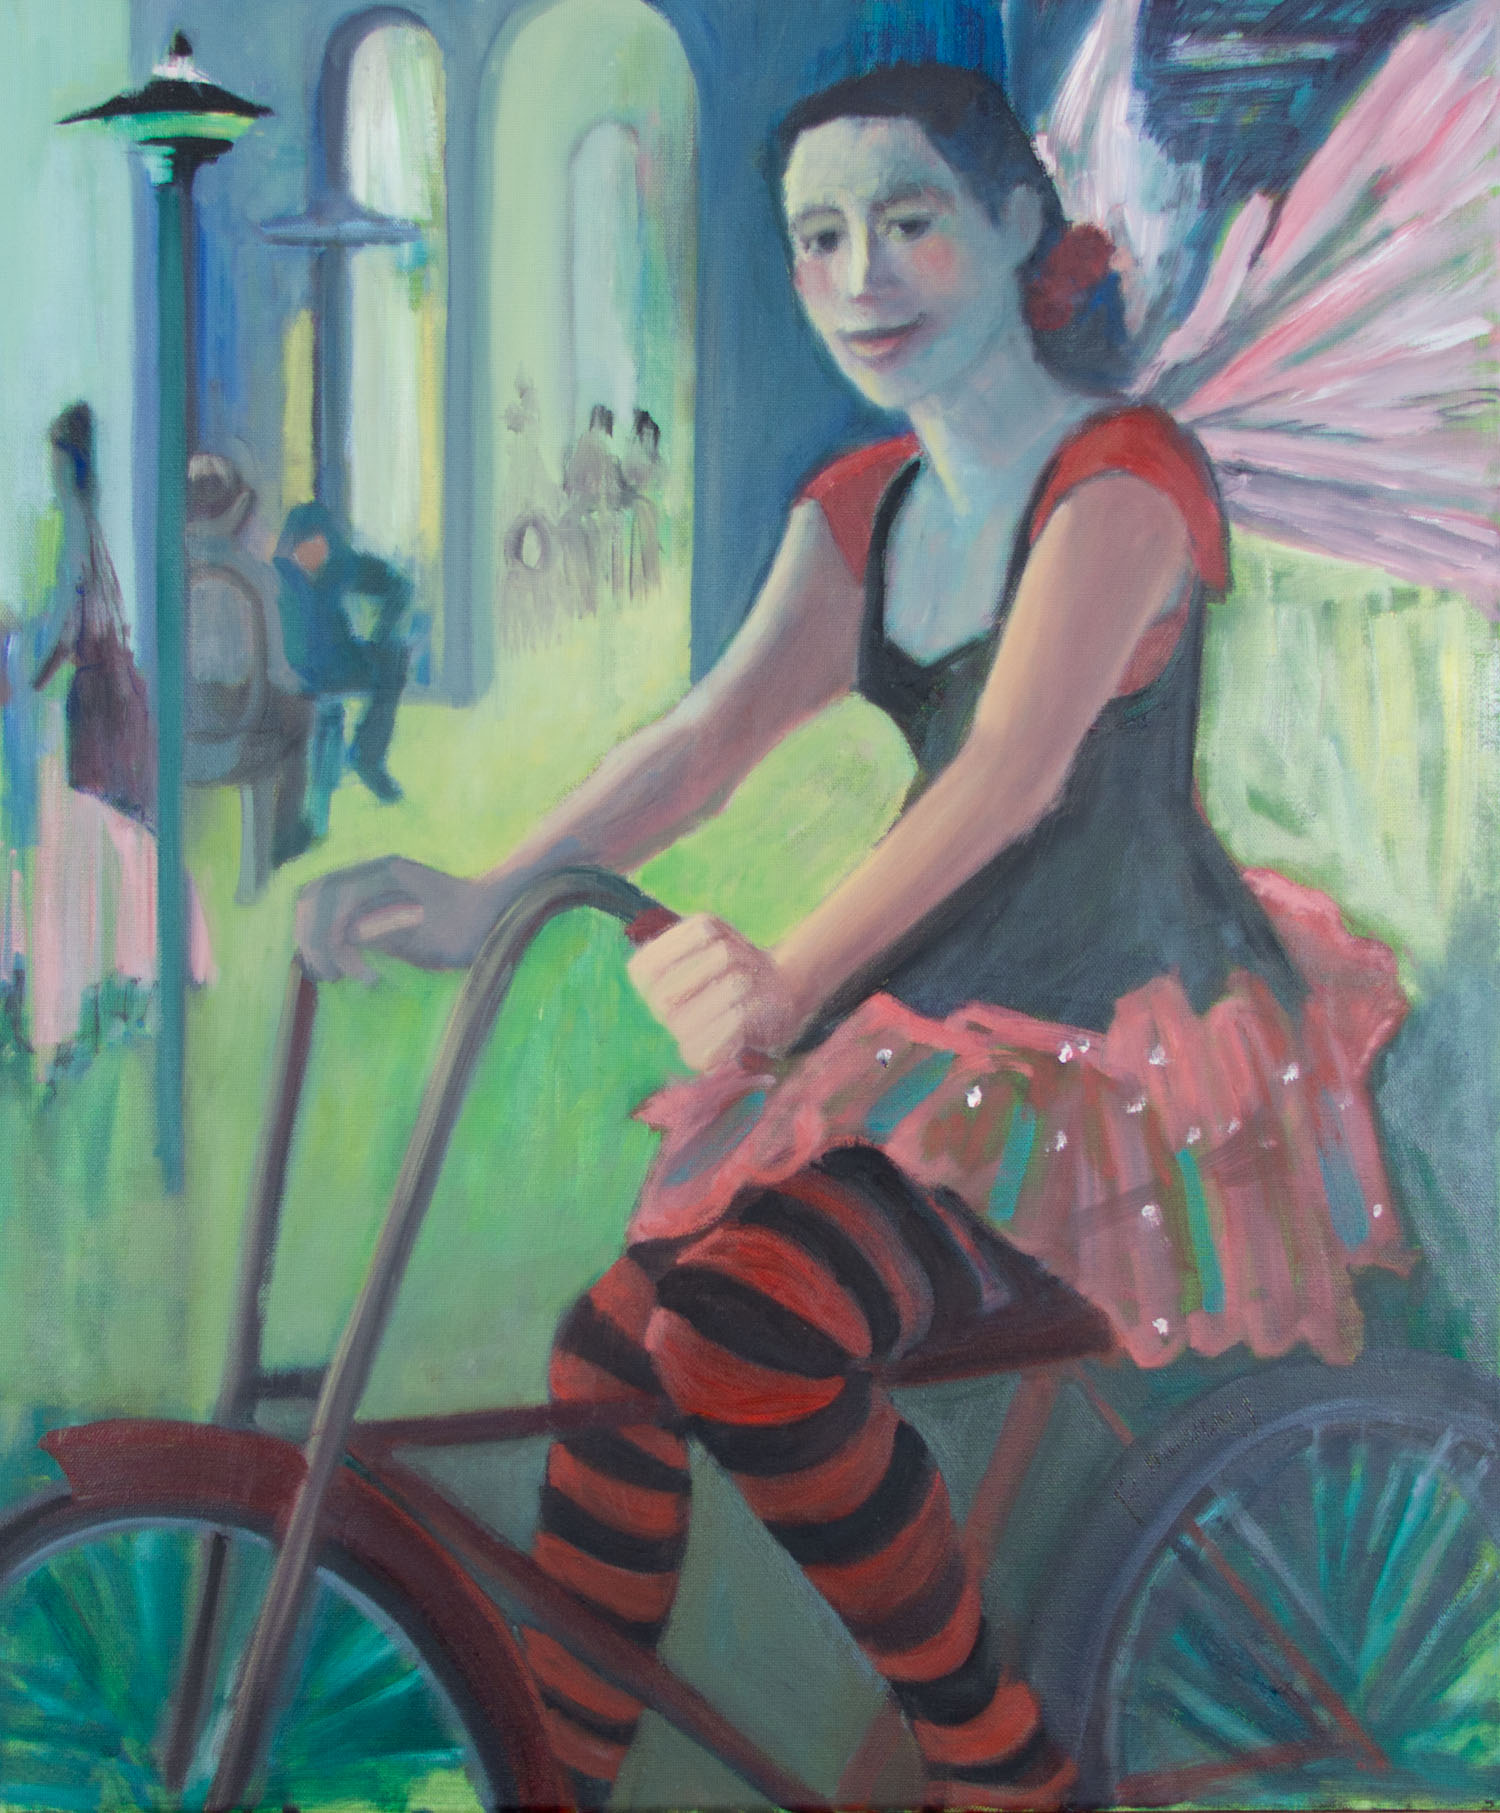 The Bicycling Fairy, New Orleans